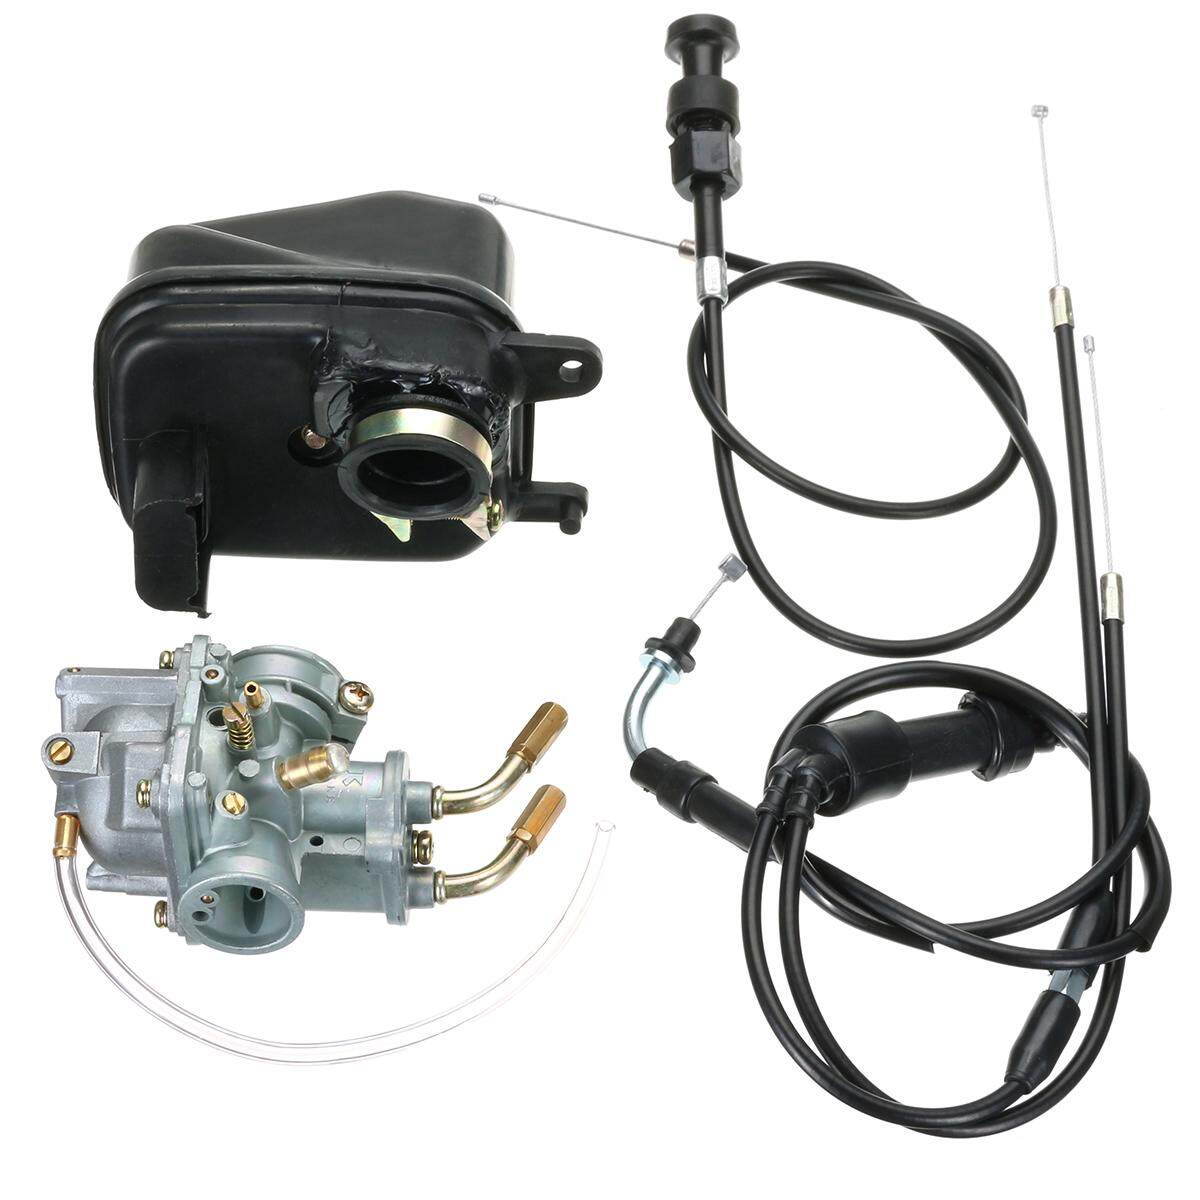 CARBY + AIR FILTER + Throttle + Choke Cable YAMAHA PEEWEE PW50 PY50 YZINGER BIKE